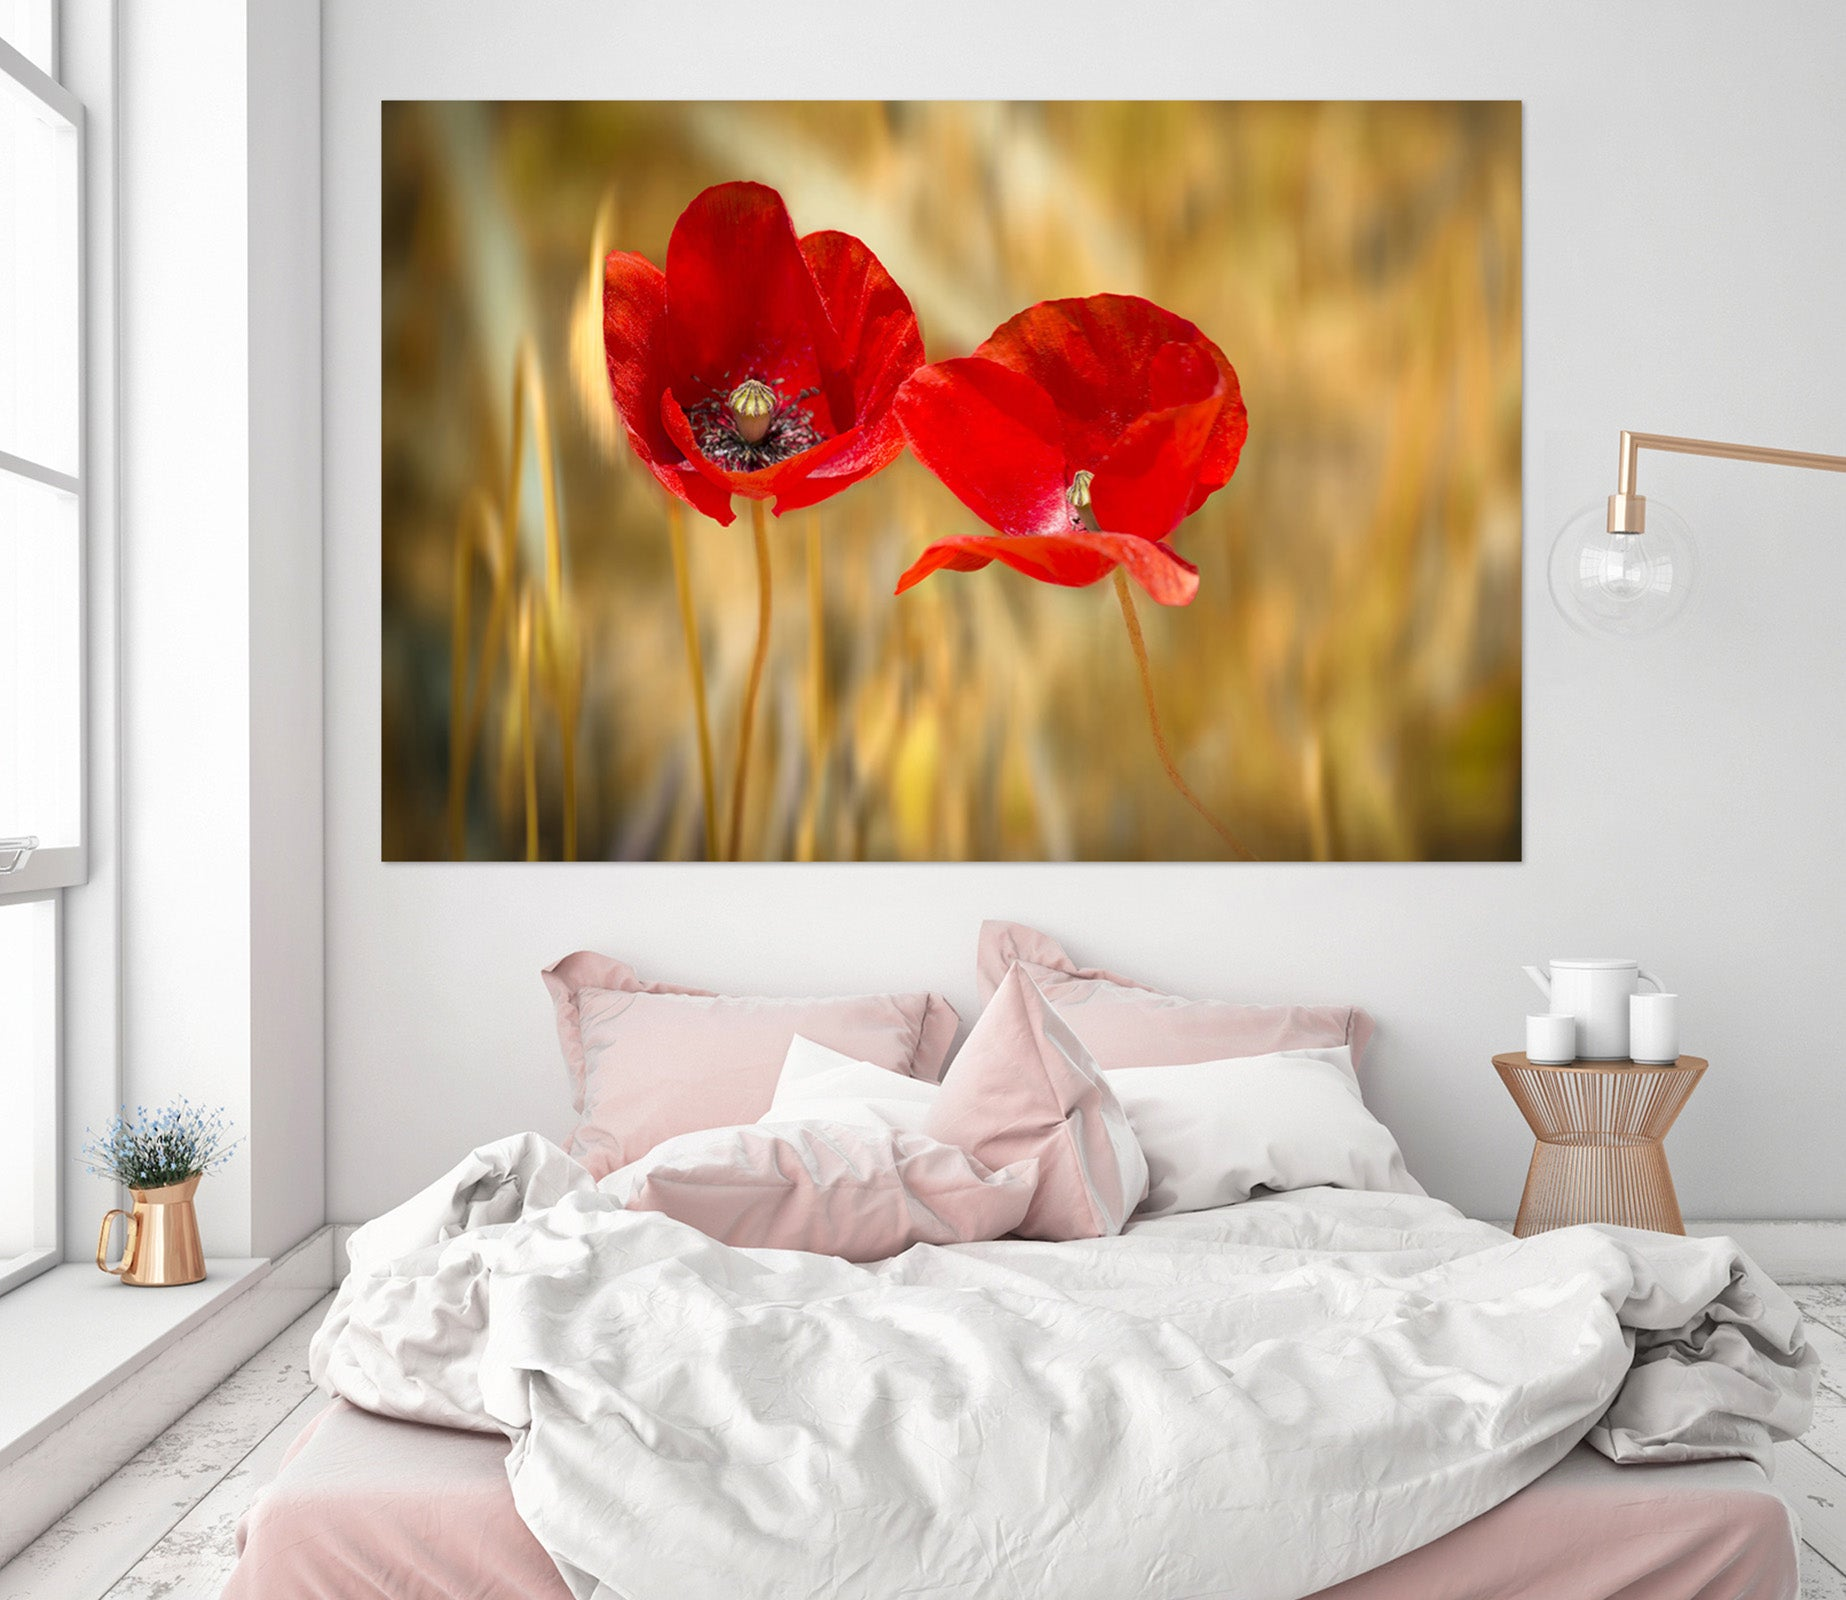 3D Red Flowers 220 Marco Carmassi Wall Sticker